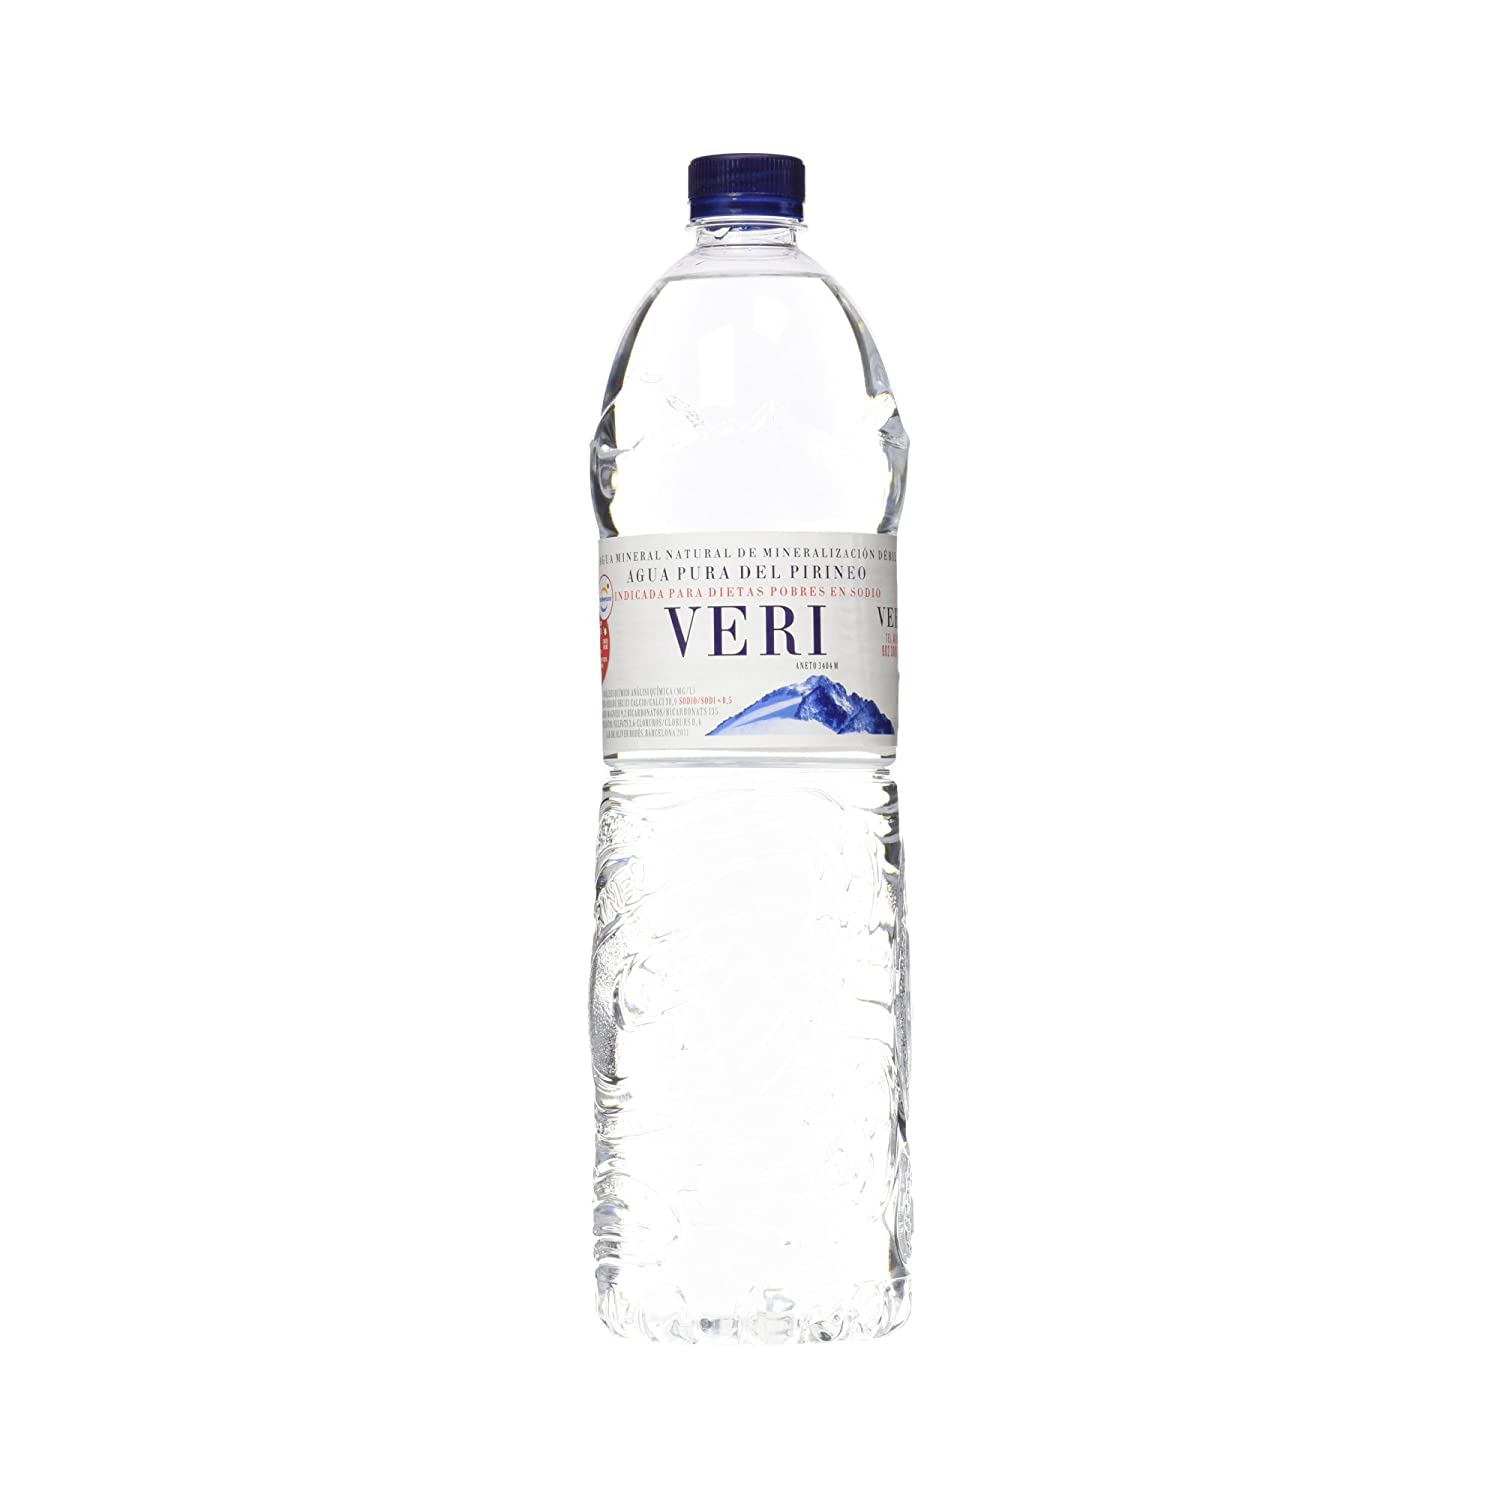 Veri Agua Mineral Natural de Mineralización Débil - Pack de 6 x 1,5 l - Total: 9000 ml: Amazon.es: Amazon Pantry